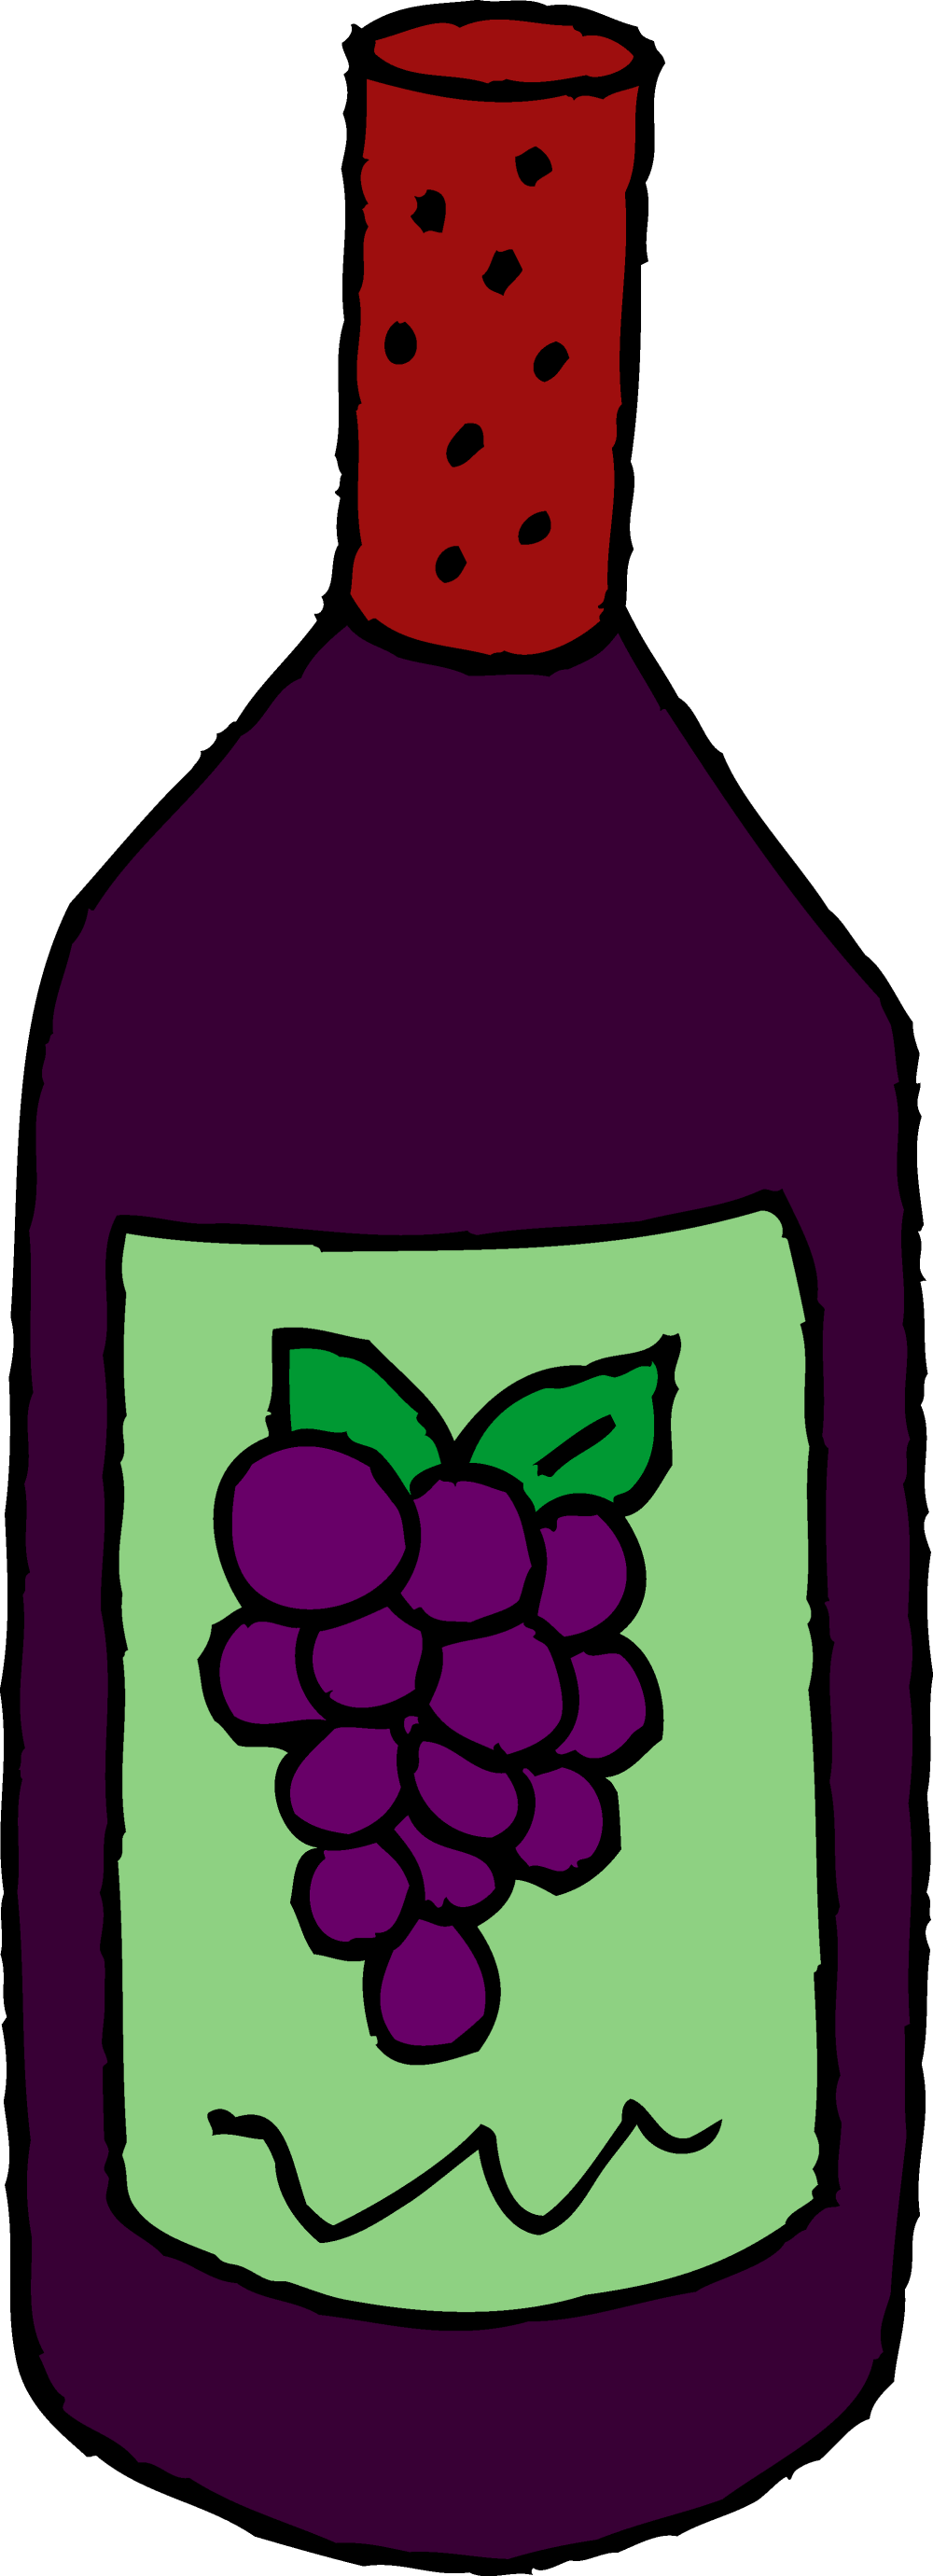 medium resolution of wine bottle wine illustrations and clipart wine bottle wine